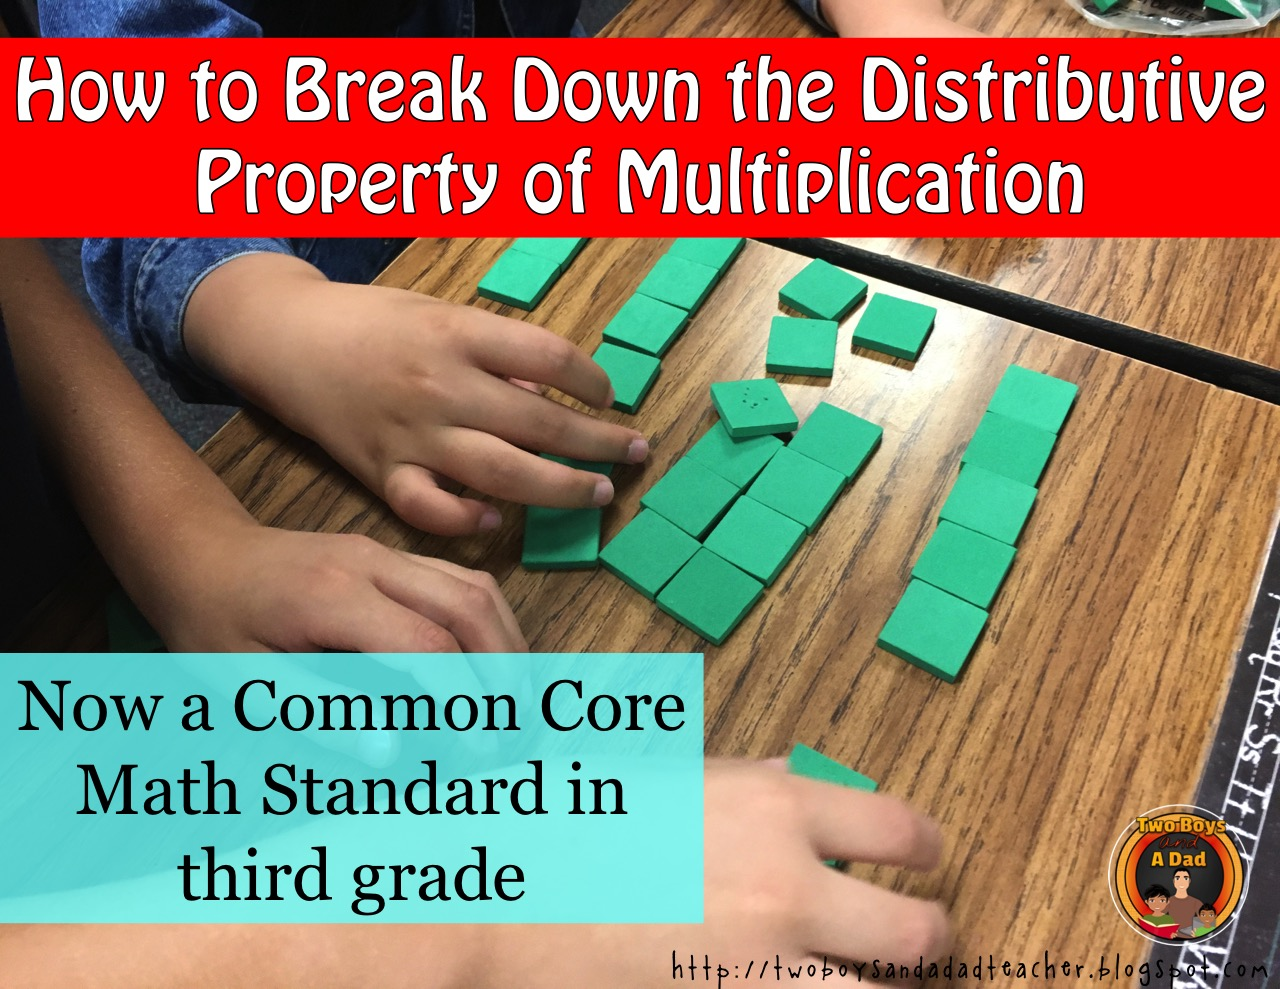 Using manipulatives to break down the Distributive Property of Multiplication